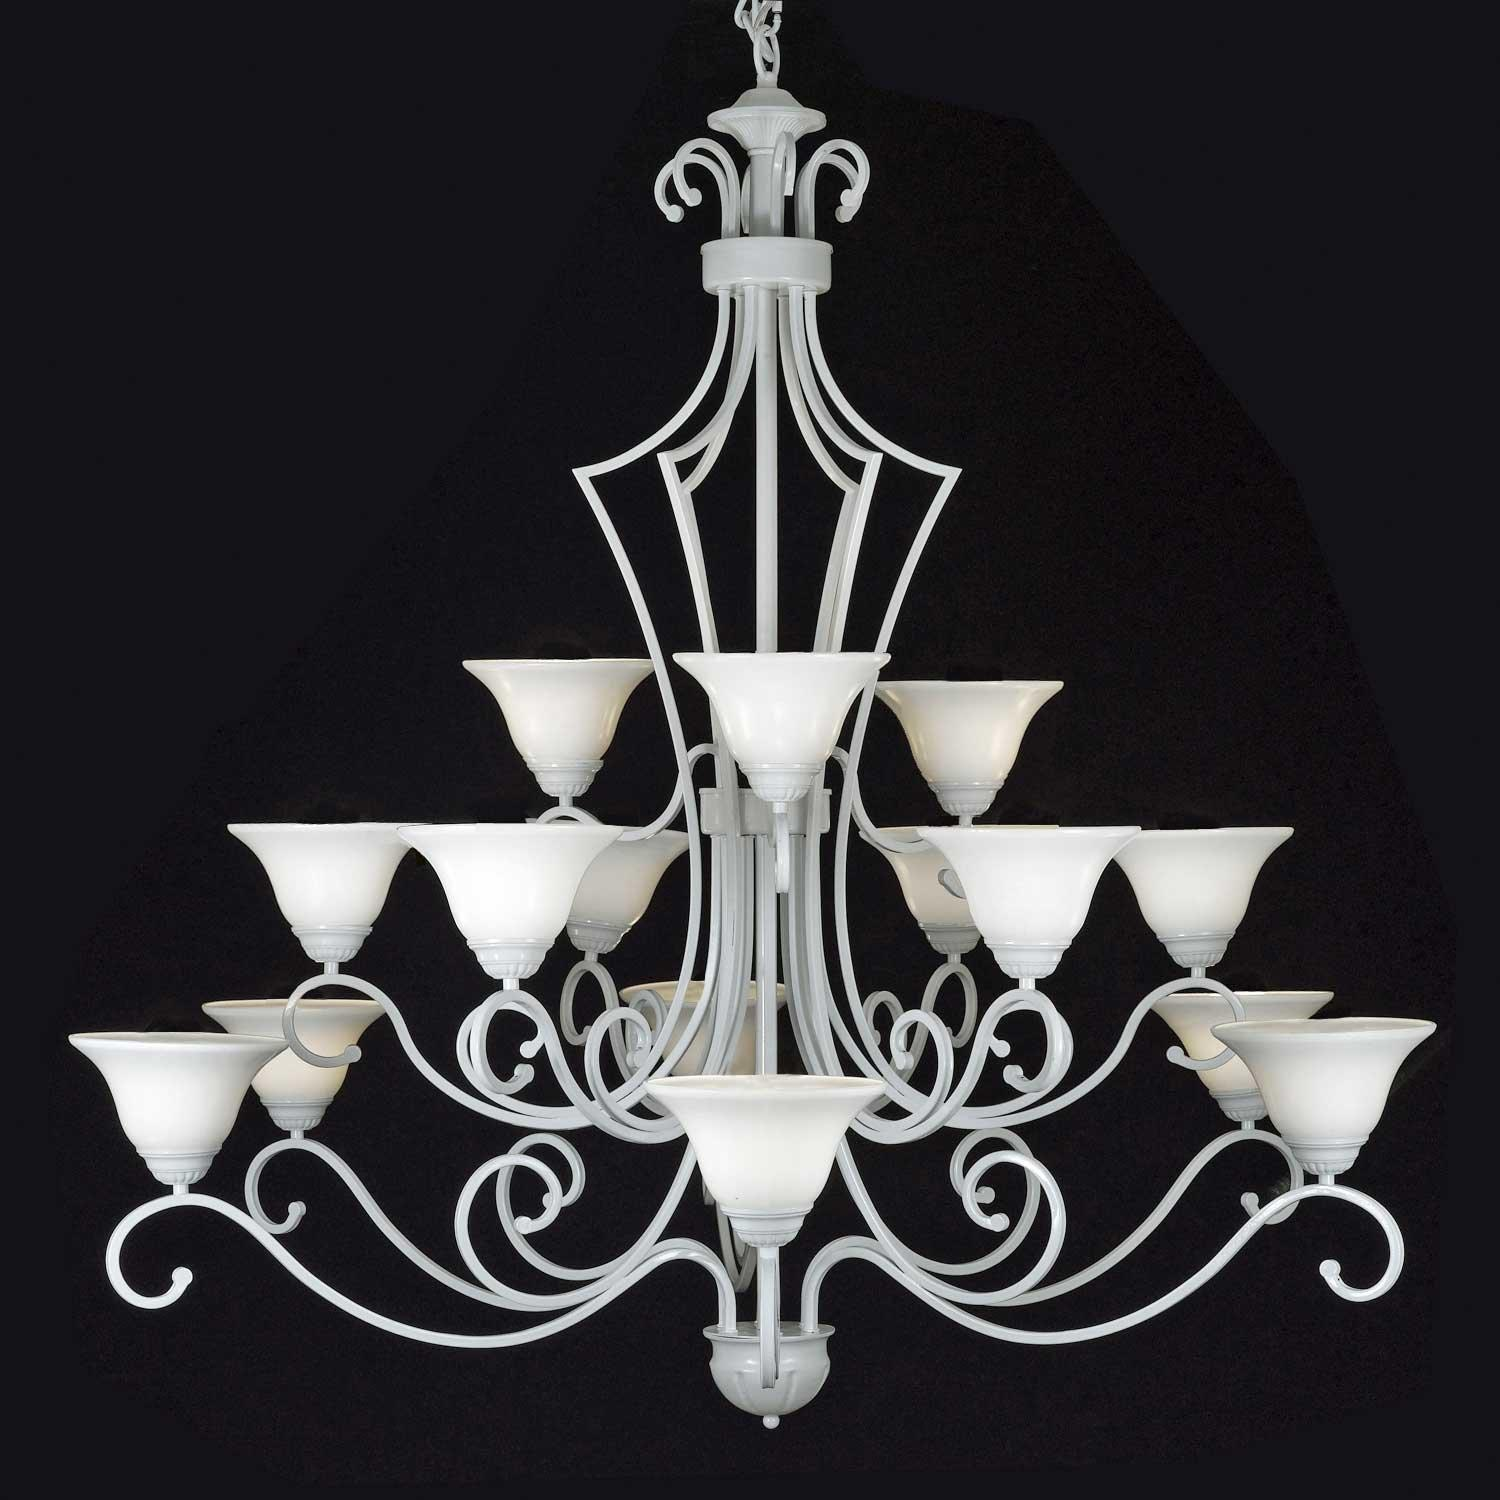 shop large entryway foyer wrought iron chandelier lighting h51 x w49